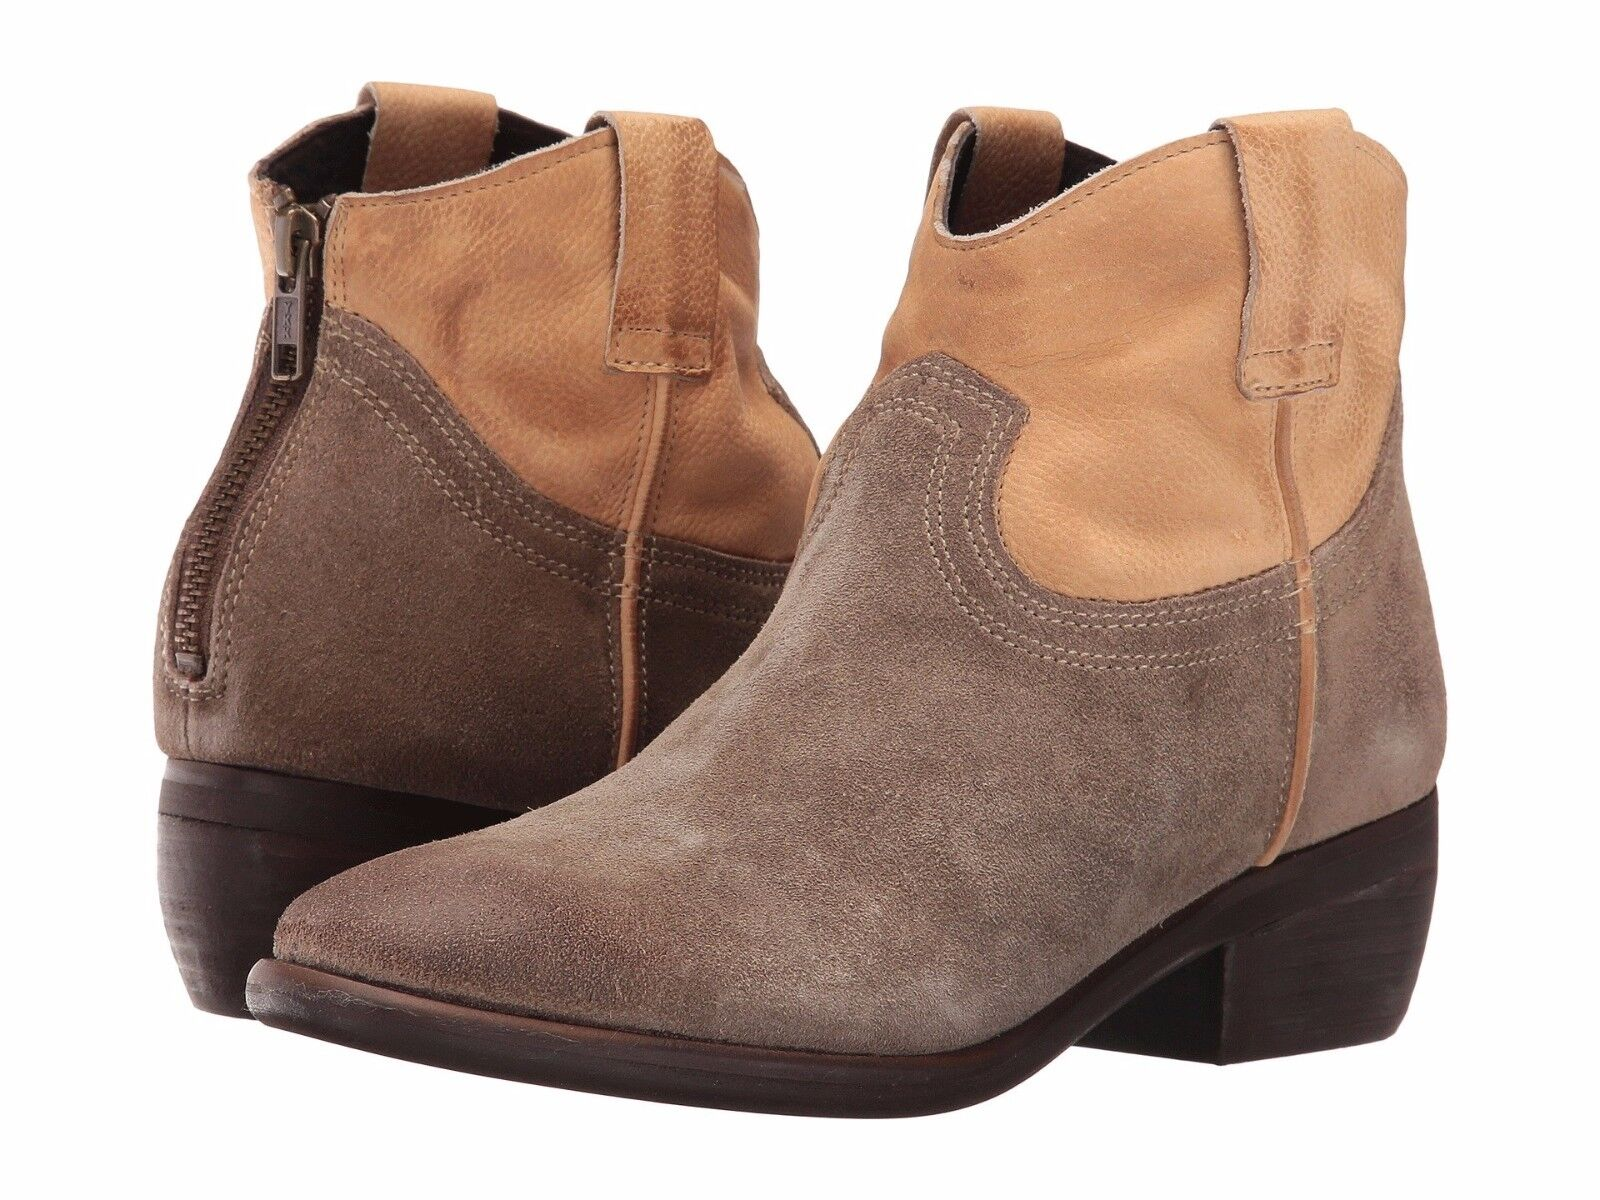 New Steve Madden Women's Midnite Ankle Booties size 8